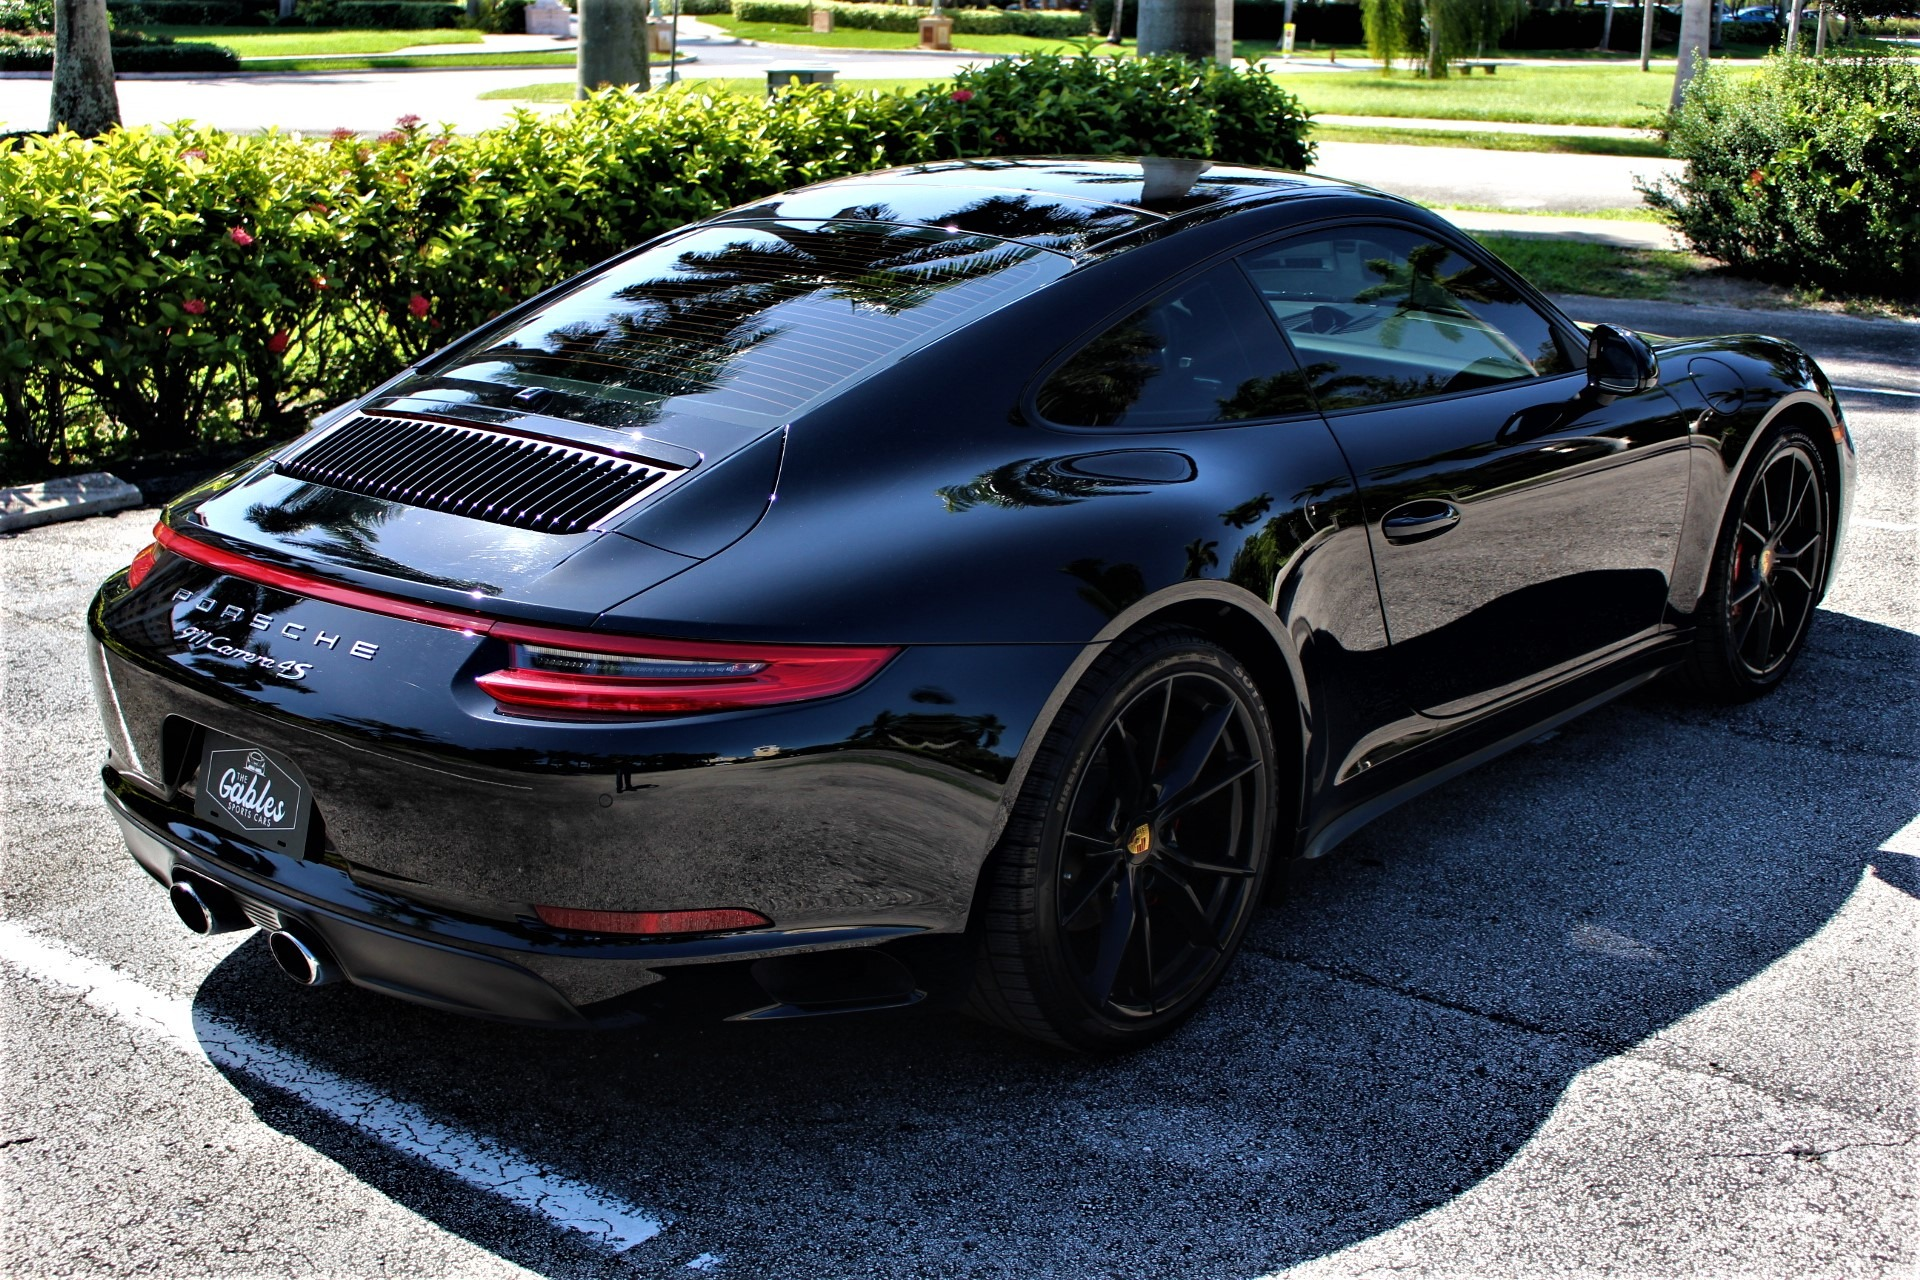 Used 2017 Porsche 911 Carrera 4S for sale Sold at The Gables Sports Cars in Miami FL 33146 1